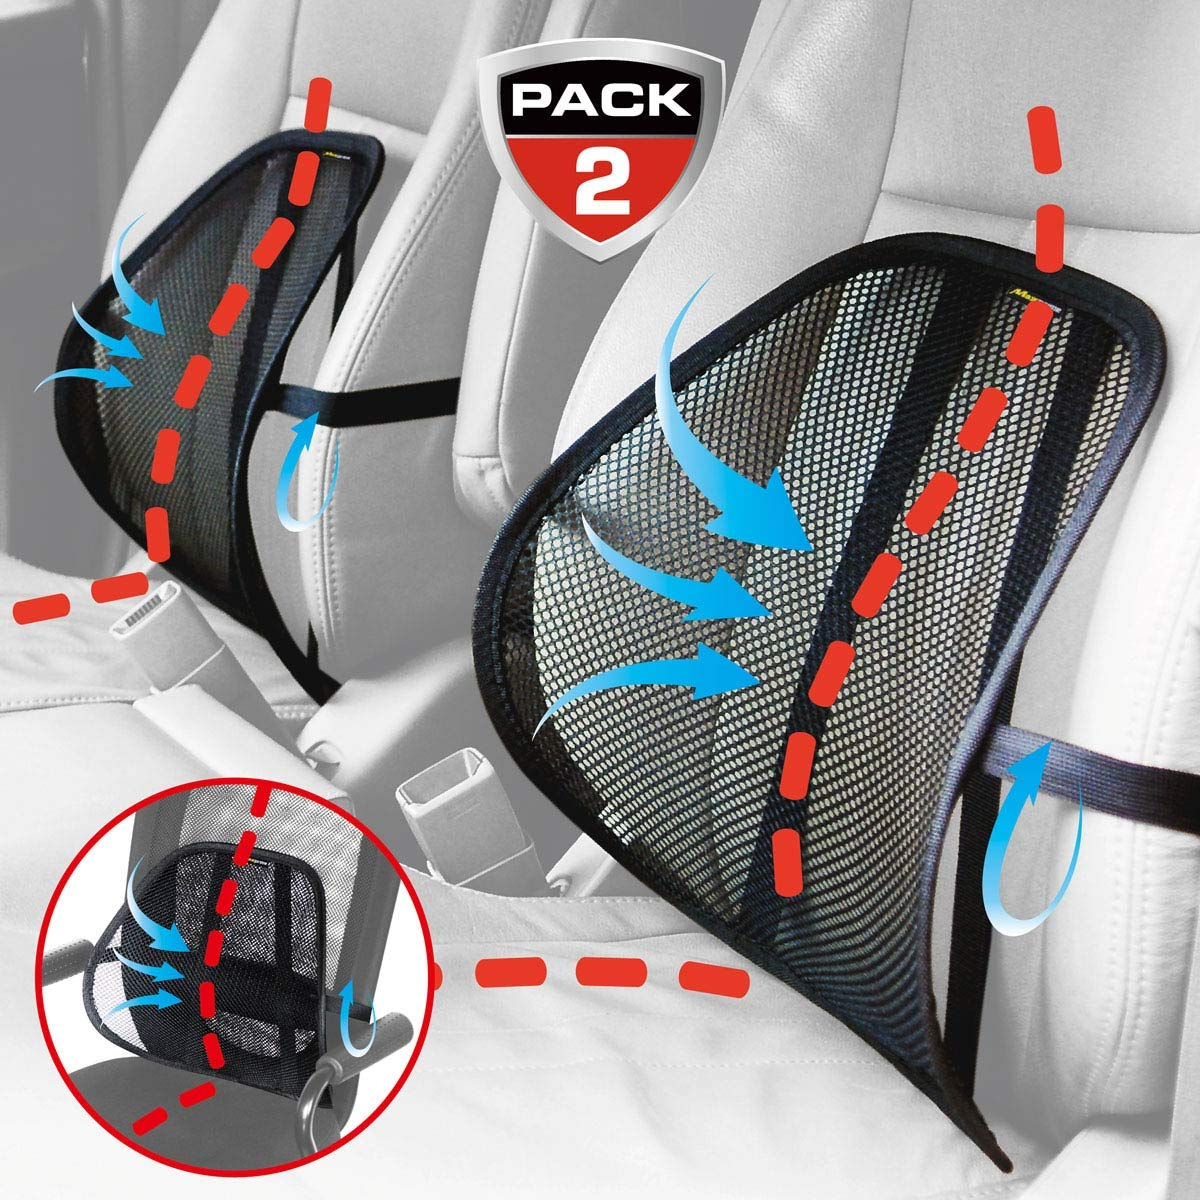 MAXXPRIME, Lumbar Support, Maxxprime Mesh Back Cushion 2 Pack Lower Back Support, Double Mesh Lumbar Cushion Air Flow Breathable Back Support Cushion for Use in Car Home and Office,Black by MAXXPRIME